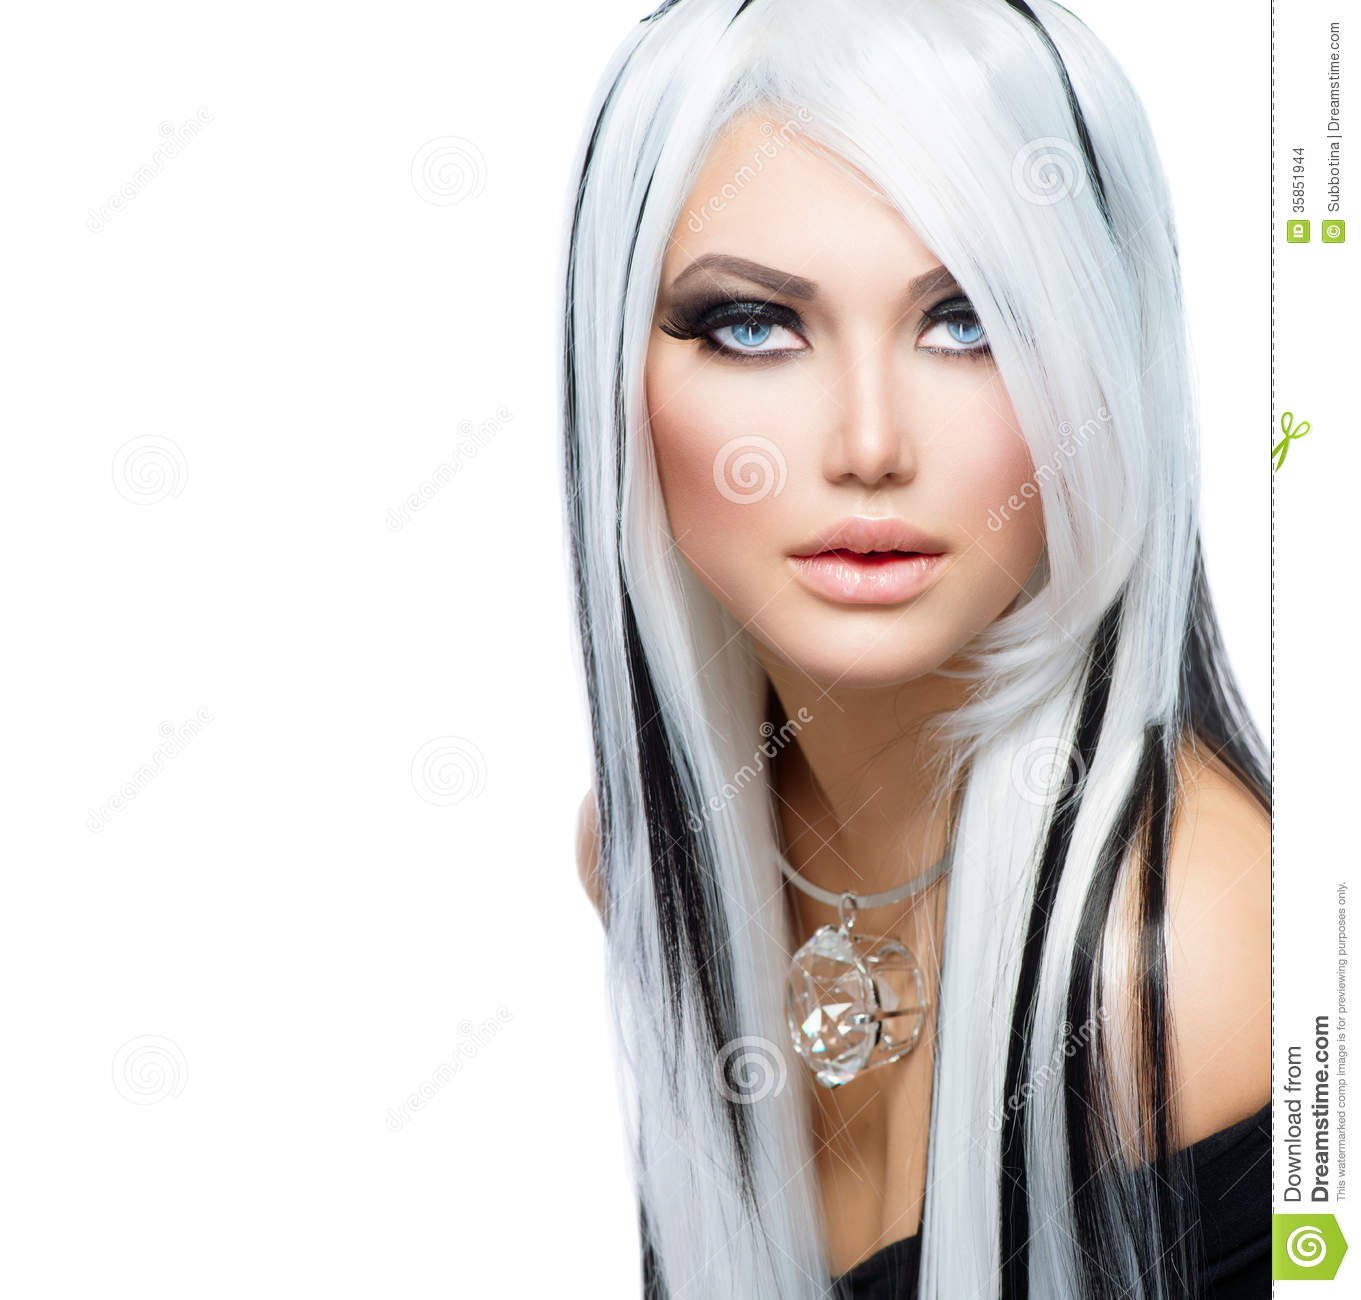 White Girl Fashion: Beauty Fashion Girl Stock Photo. Image Of Diamond